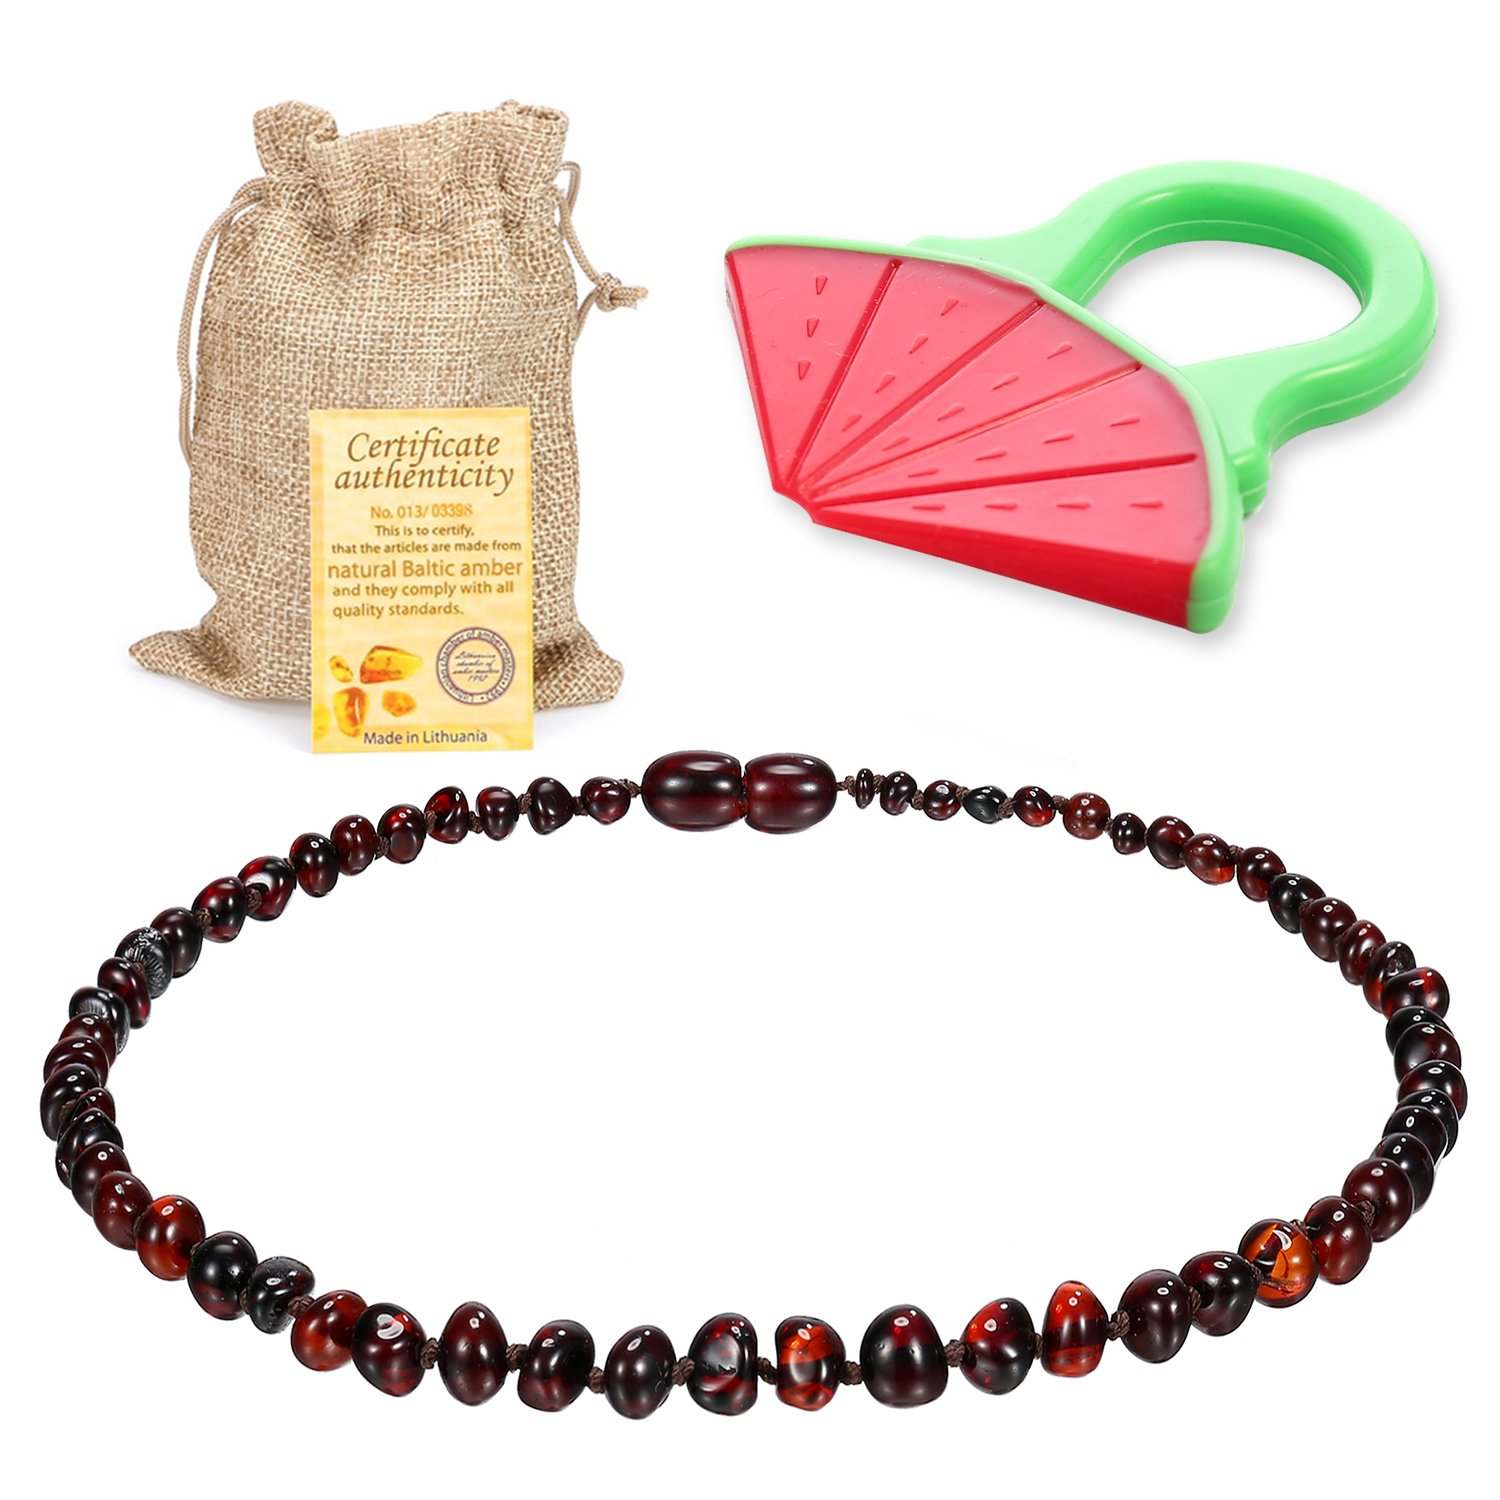 Baby Baltic Amber Teething Necklace Jewelry - (Cherry) Anti-Flammatory, Drooling & Free Teething Toy Pain Reduce - Reduces Tension and Fear, Teething Necklace For 3 to 36 Months Babies,Boys and Girls Sweetie House